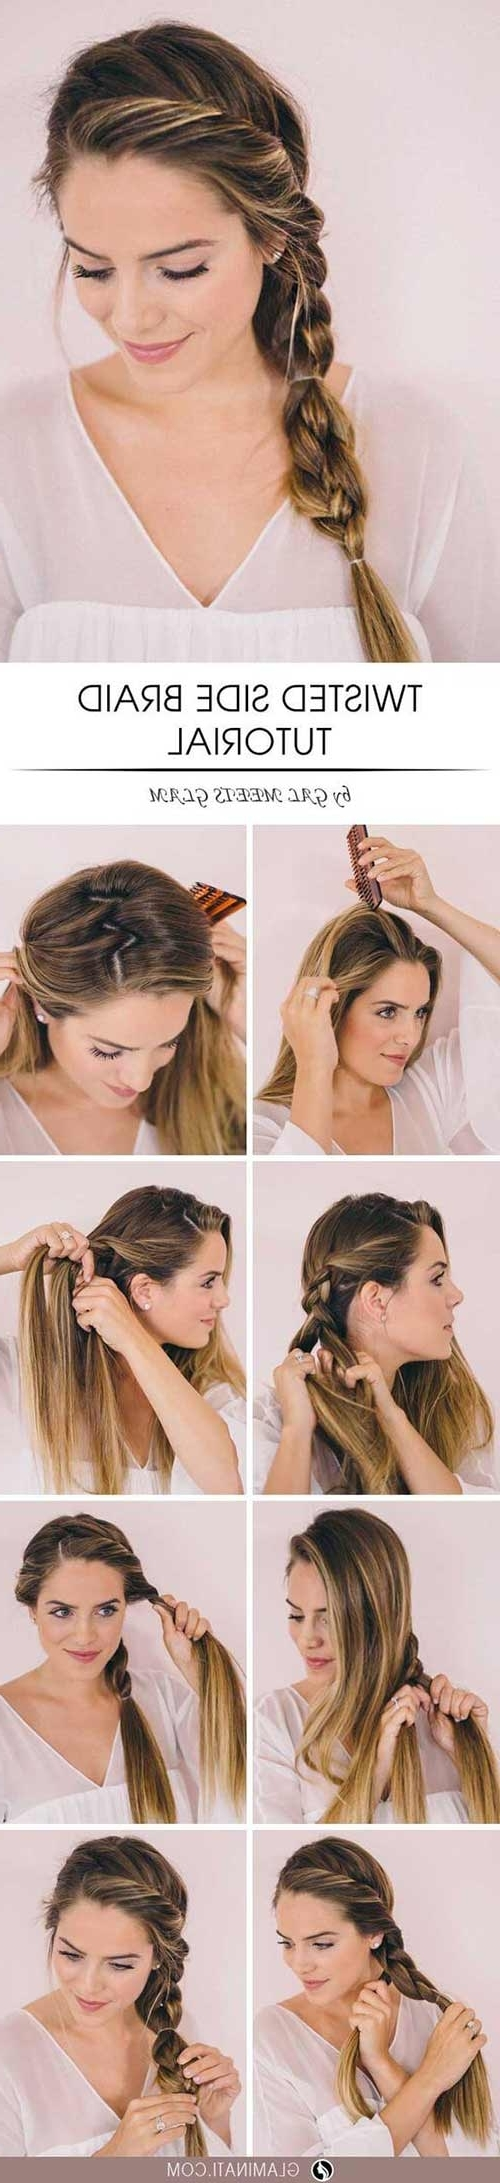 20 Awesome Hairstyles For Girls With Long Hair Pertaining To Well Known Flowy Side Braid Ponytail Hairstyles (View 1 of 20)